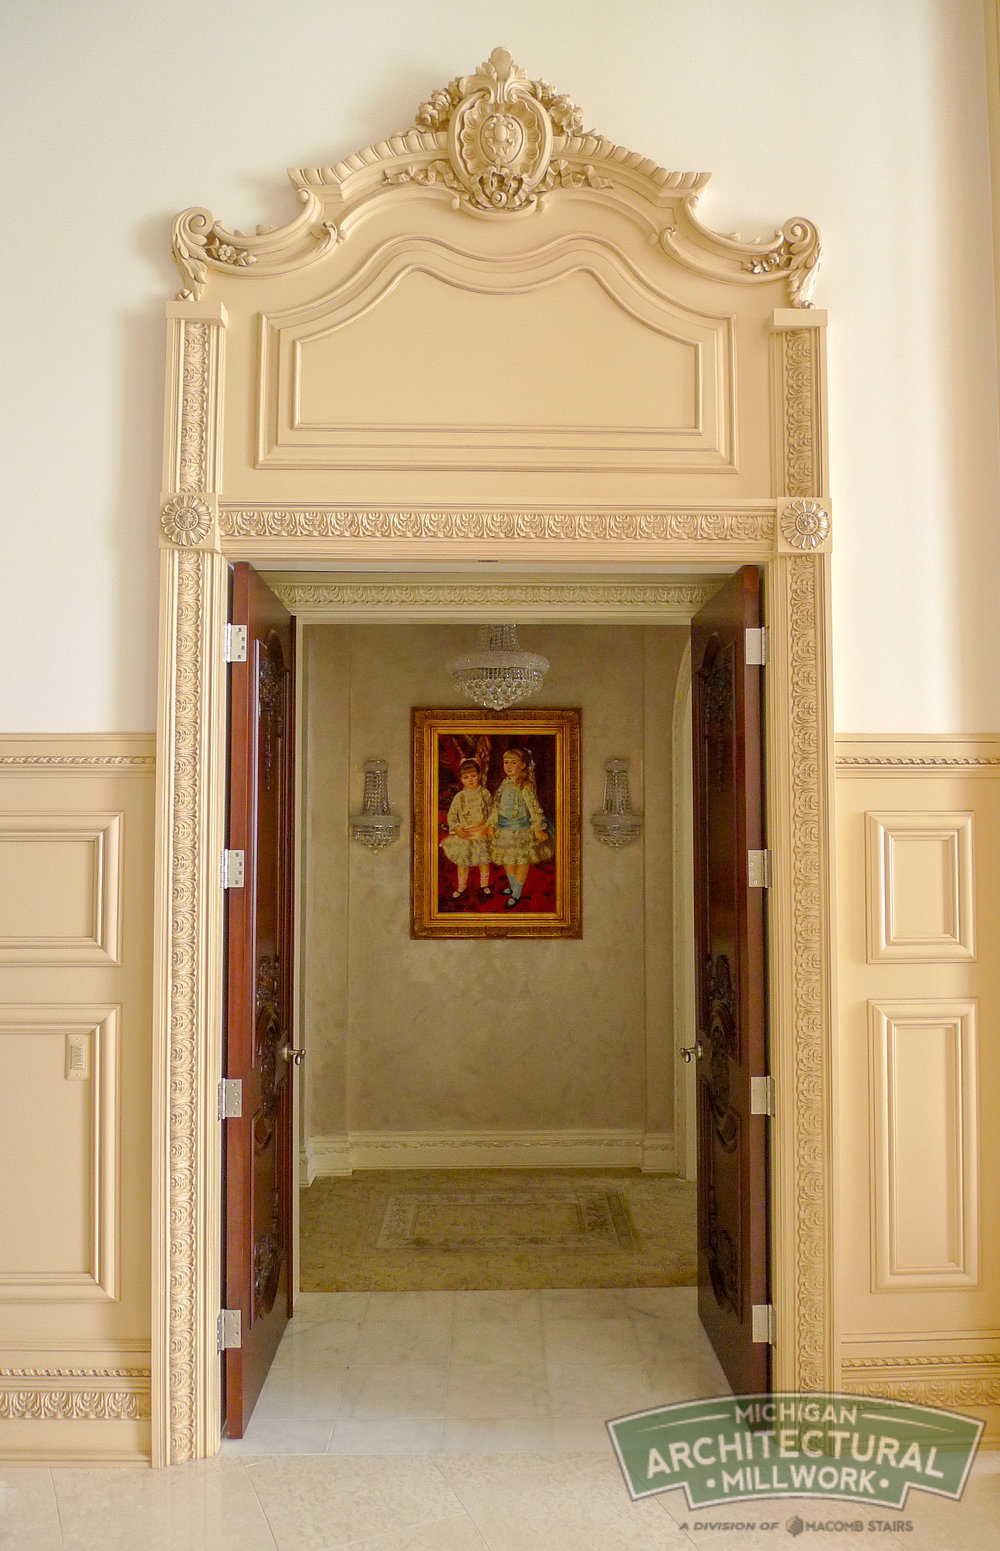 Michigan Architectural Millwork- Moulding and Millwork Photo-138.jpg